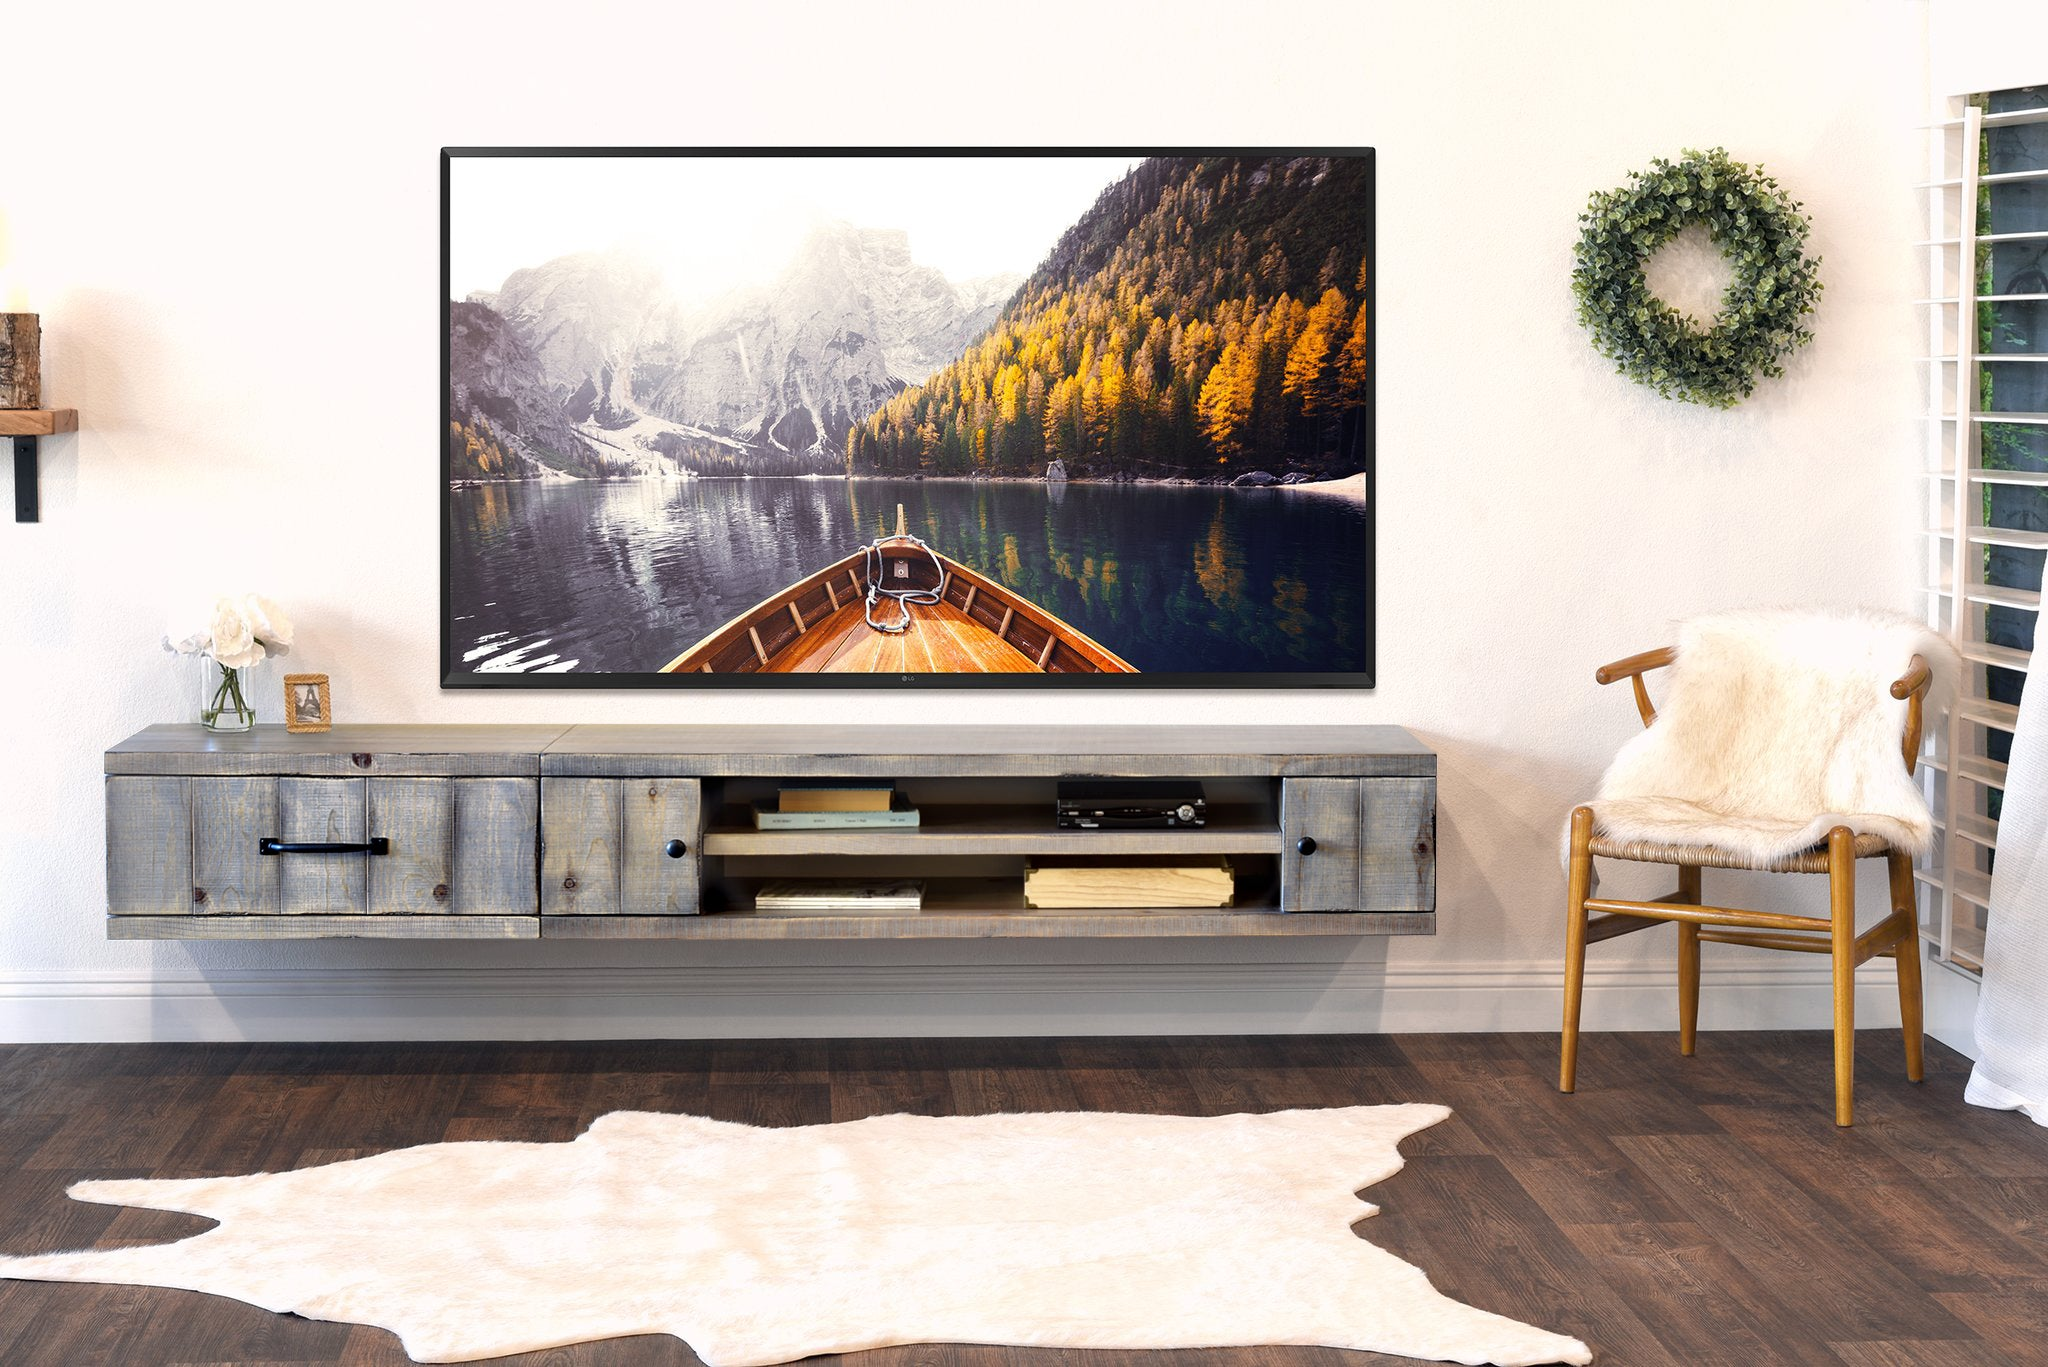 Gray Rustic Reclaimed Wood Style Floating TV Stand Wall Mount Entertainment Center Farmhouse Lakewood Woodwaves 2048x